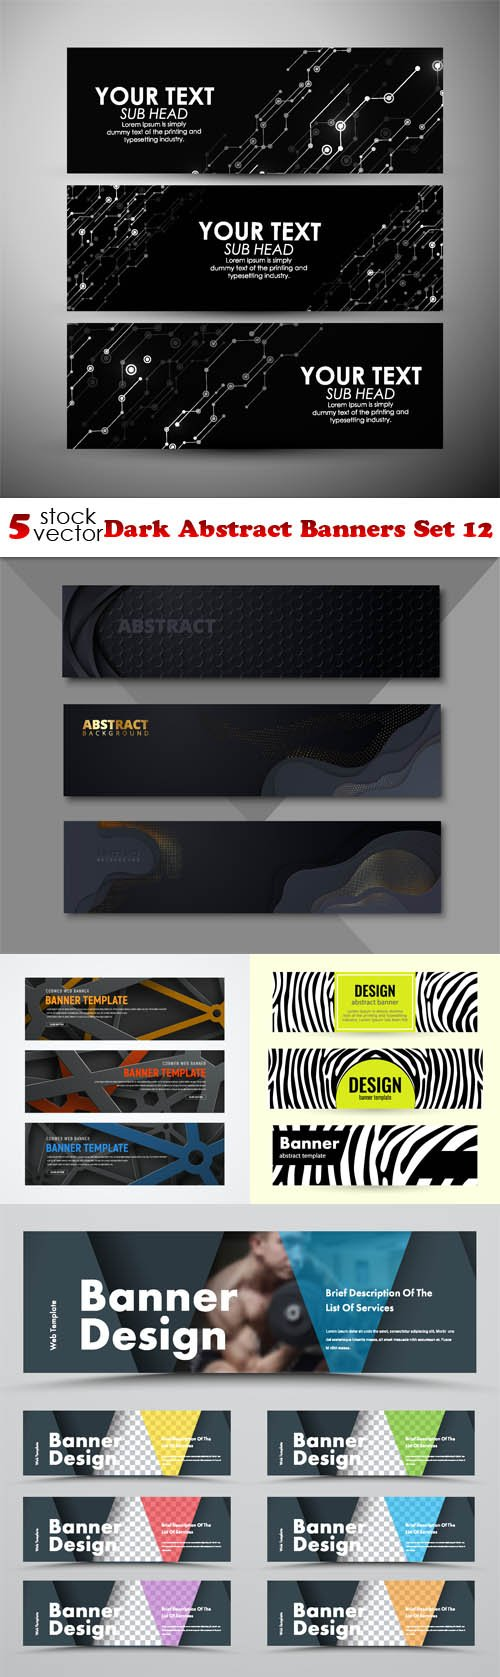 Vectors - Dark Abstract Banners Set 12